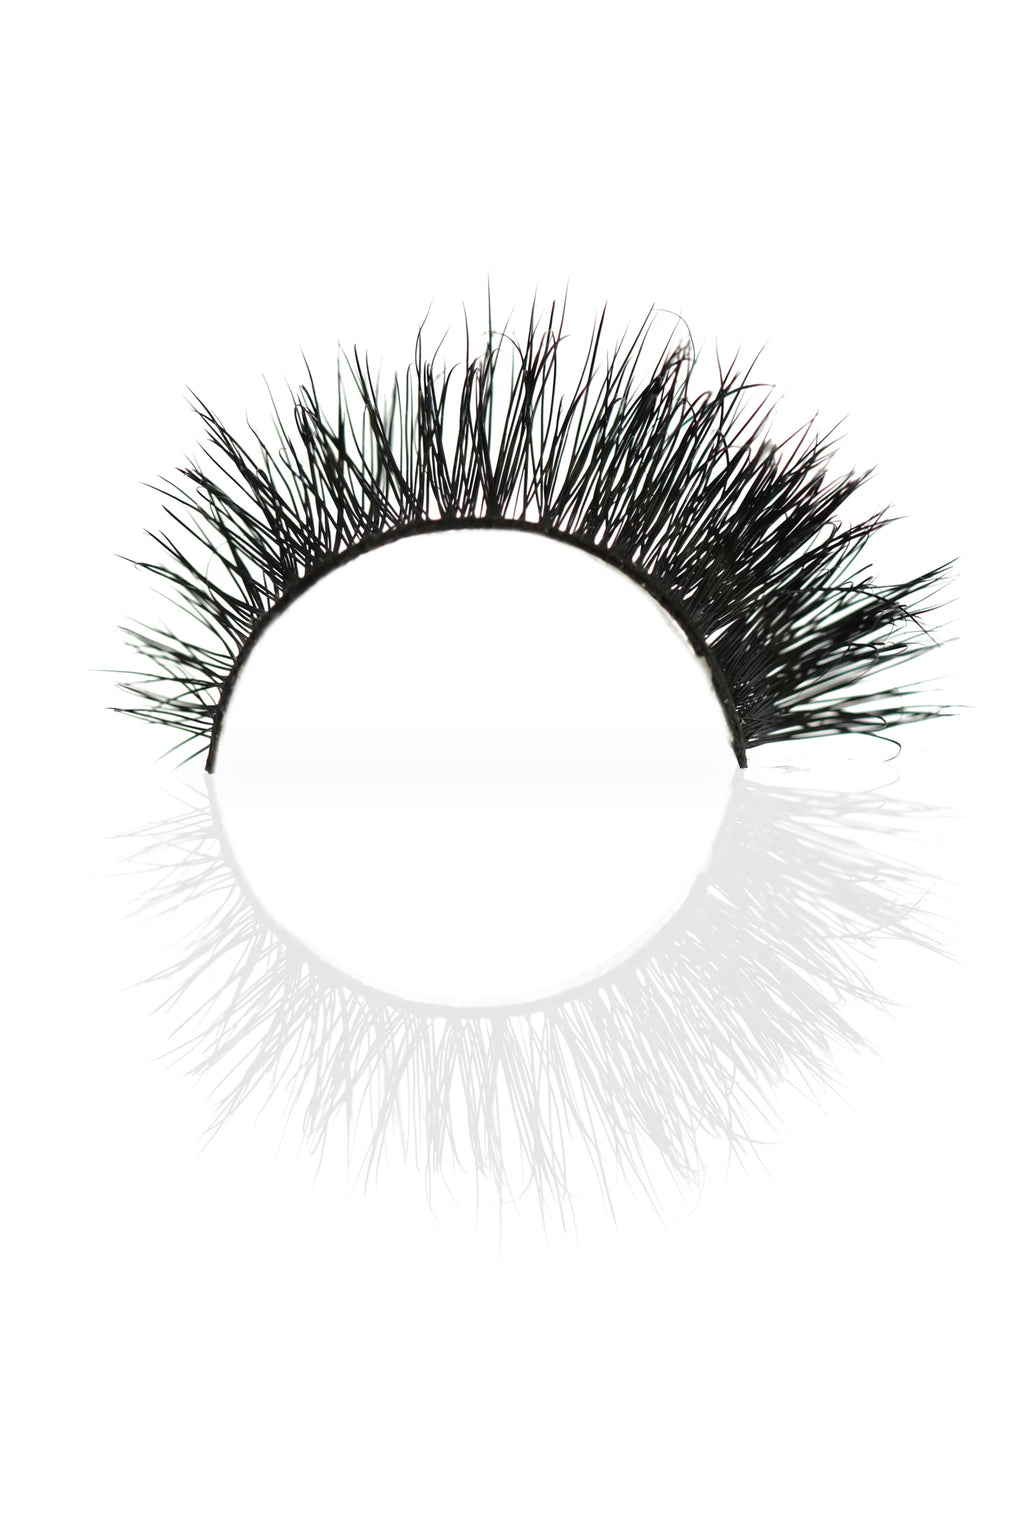 GB24 Luxury Mink Eyelashes